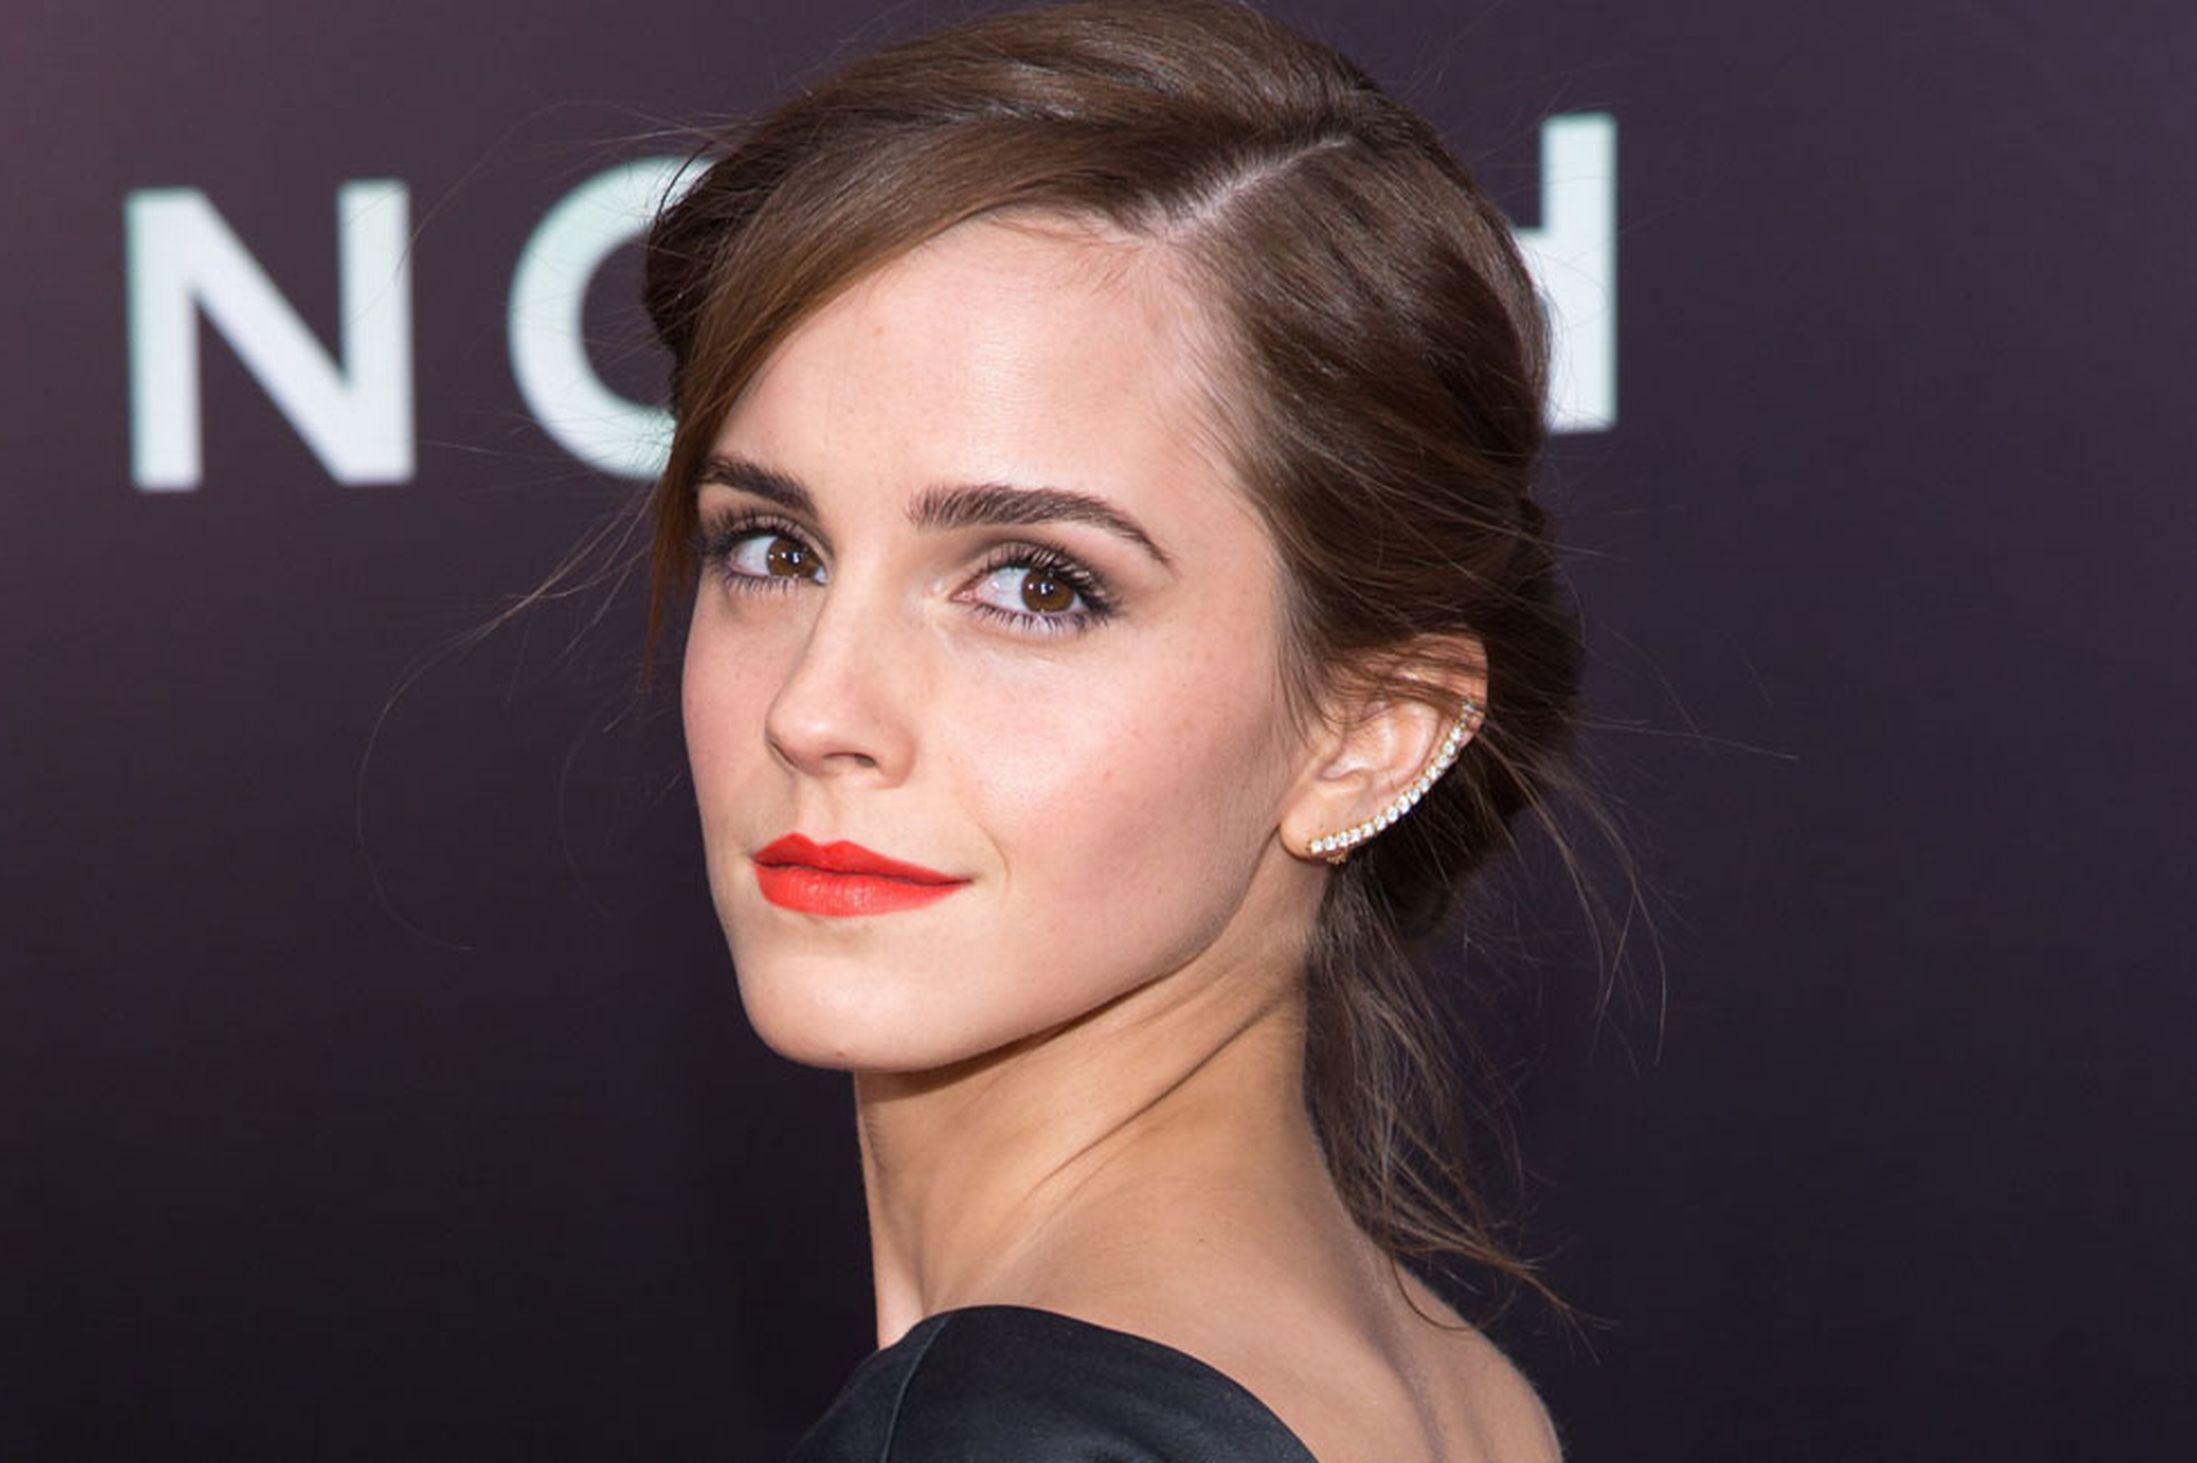 Emma Watson 09 Viva Press Eyelash